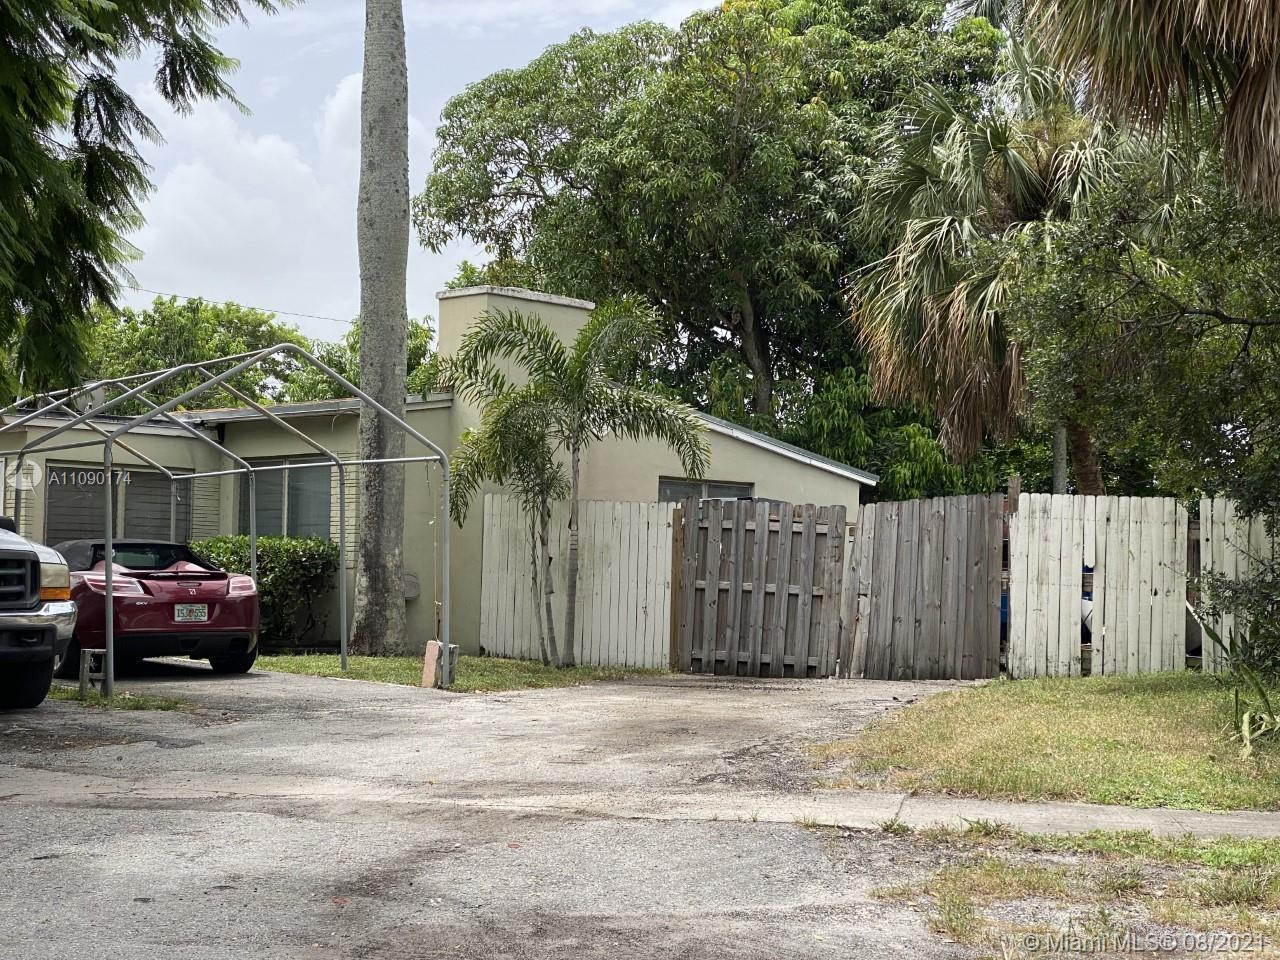 ATTENTION INVESTORS!!! 2 BEDROOM 1 BATHROOM HOME, GREAT VALUE ADD OPPORTUNITY TO FIX, RENT, AND HOLD